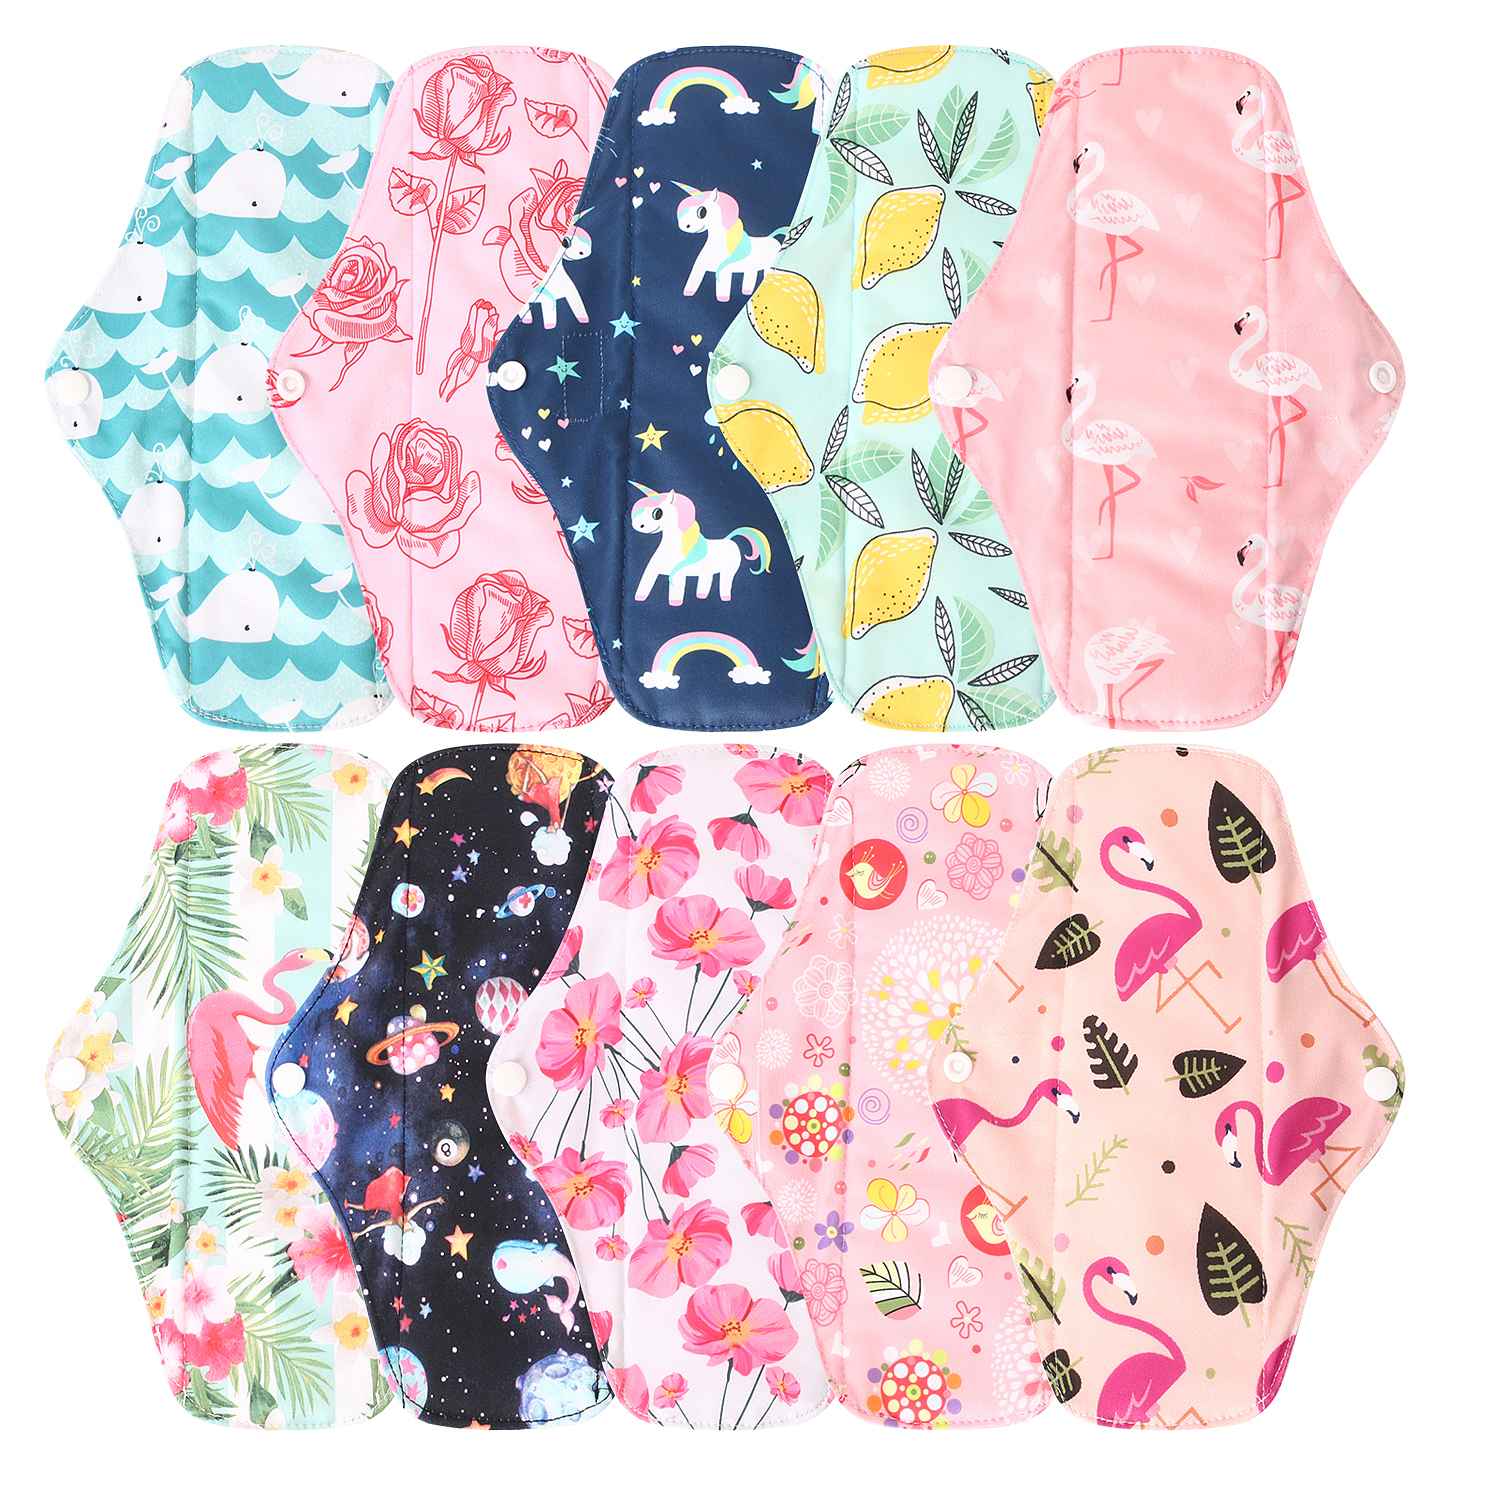 10PCS Organic Bamboo Washable Hygiene Menstrual Pads Heavy Flow Sanitary Pads Lady Cloth Pad Unicorn Print Reusable Pads Size M